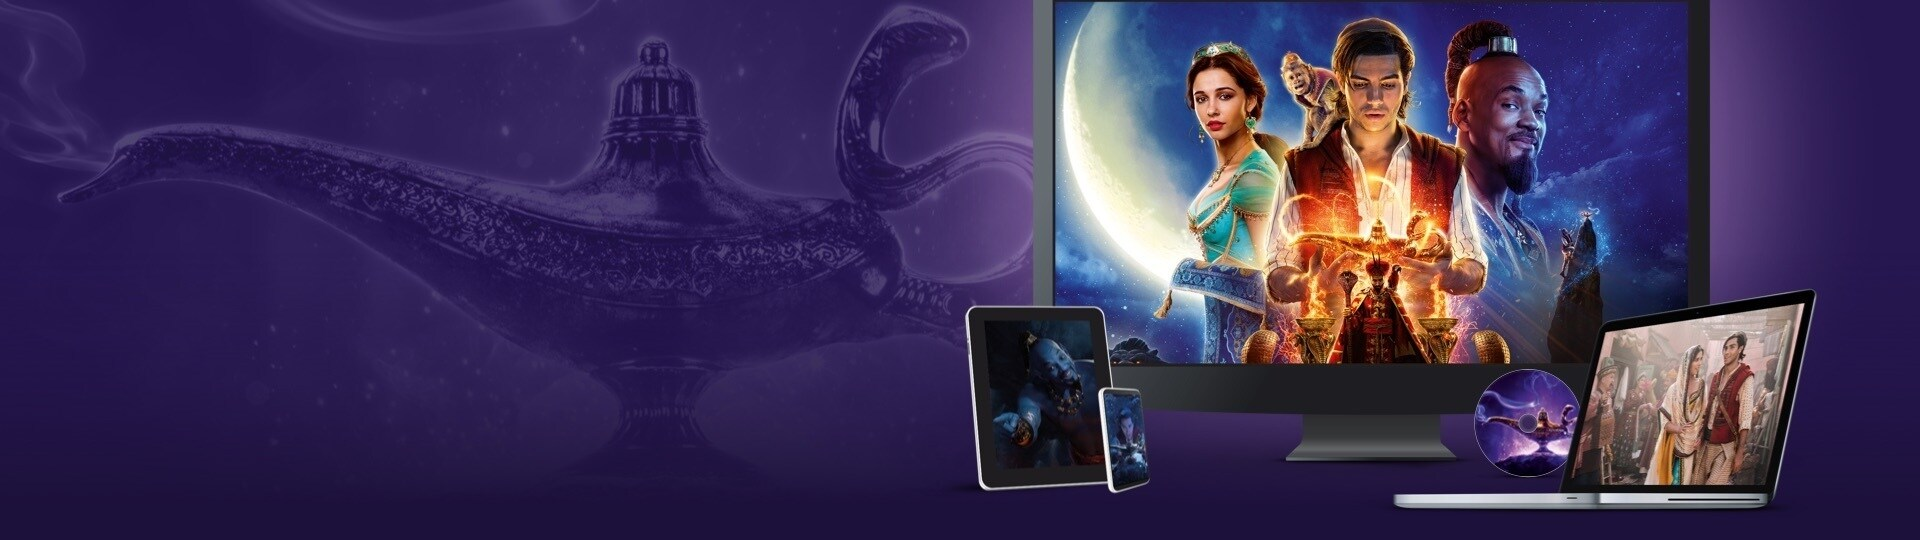 Aladdin | Disponibil pe DVD